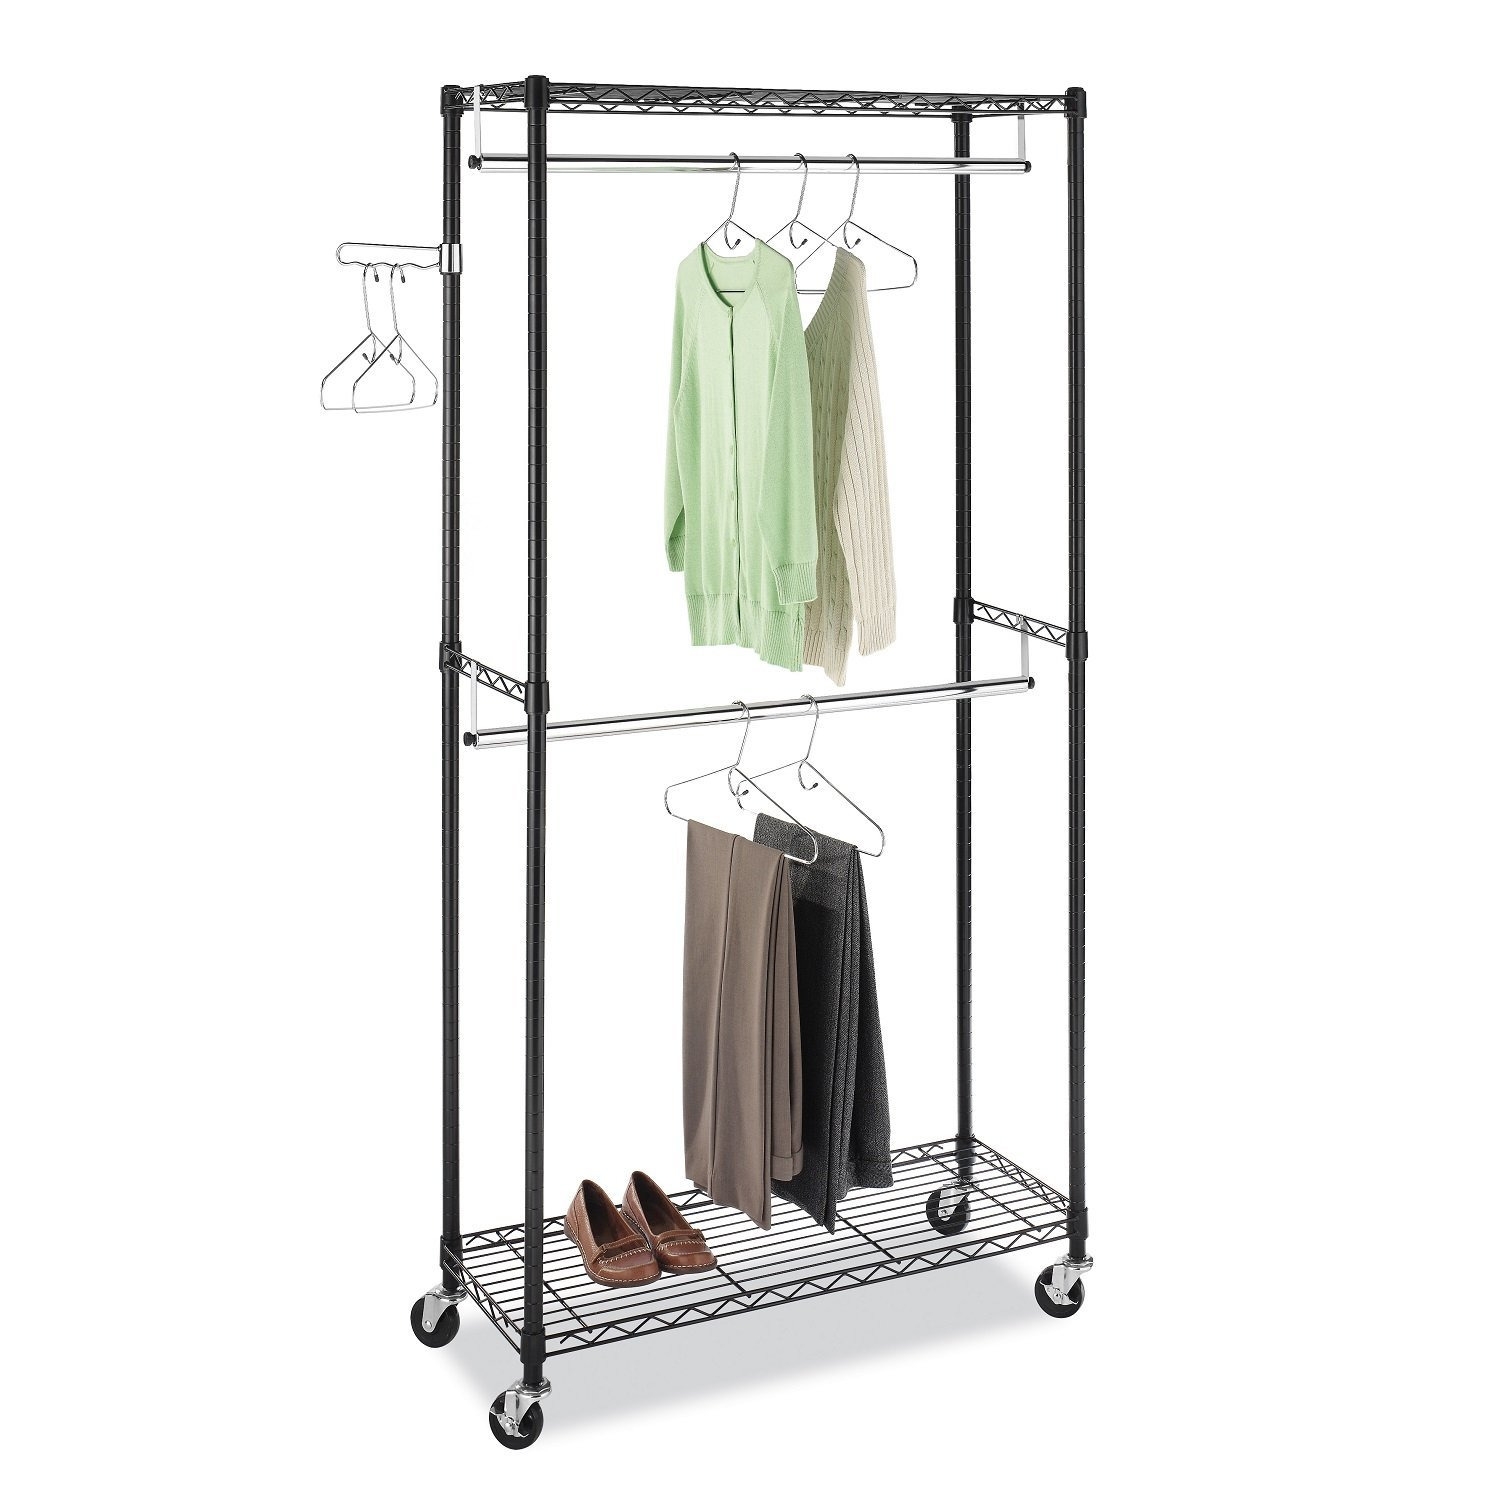 Whitmor Supreme Double Rod Garment Rack, Black & Chrome with Wheels